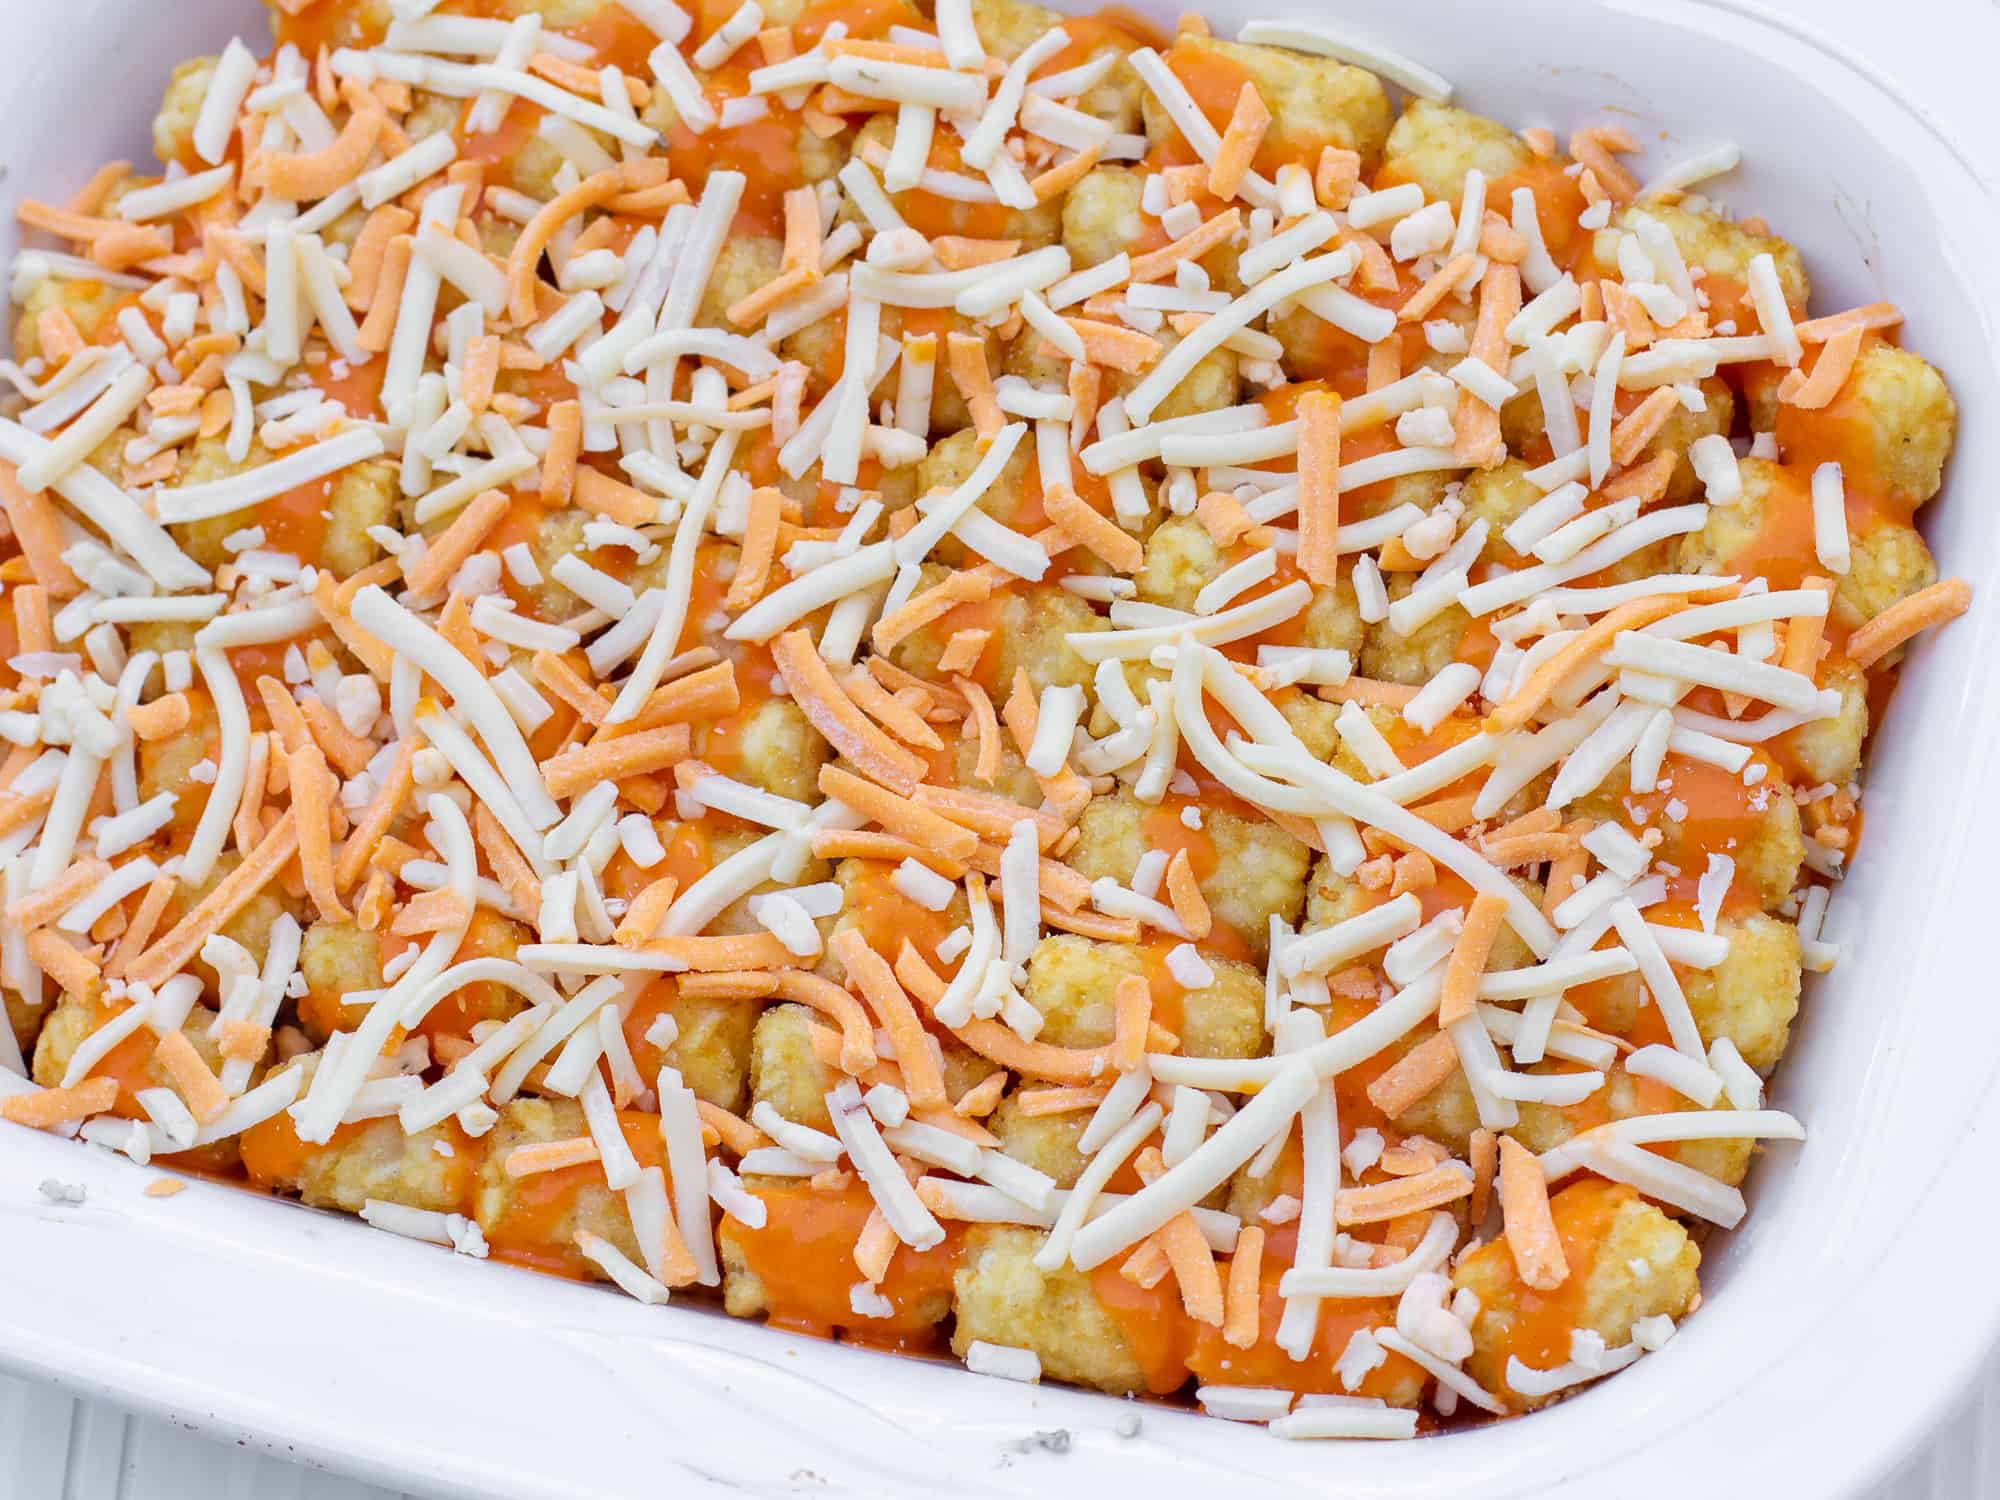 Place Tate Tots on top and drizzle with buffalo sauce and grated cheese